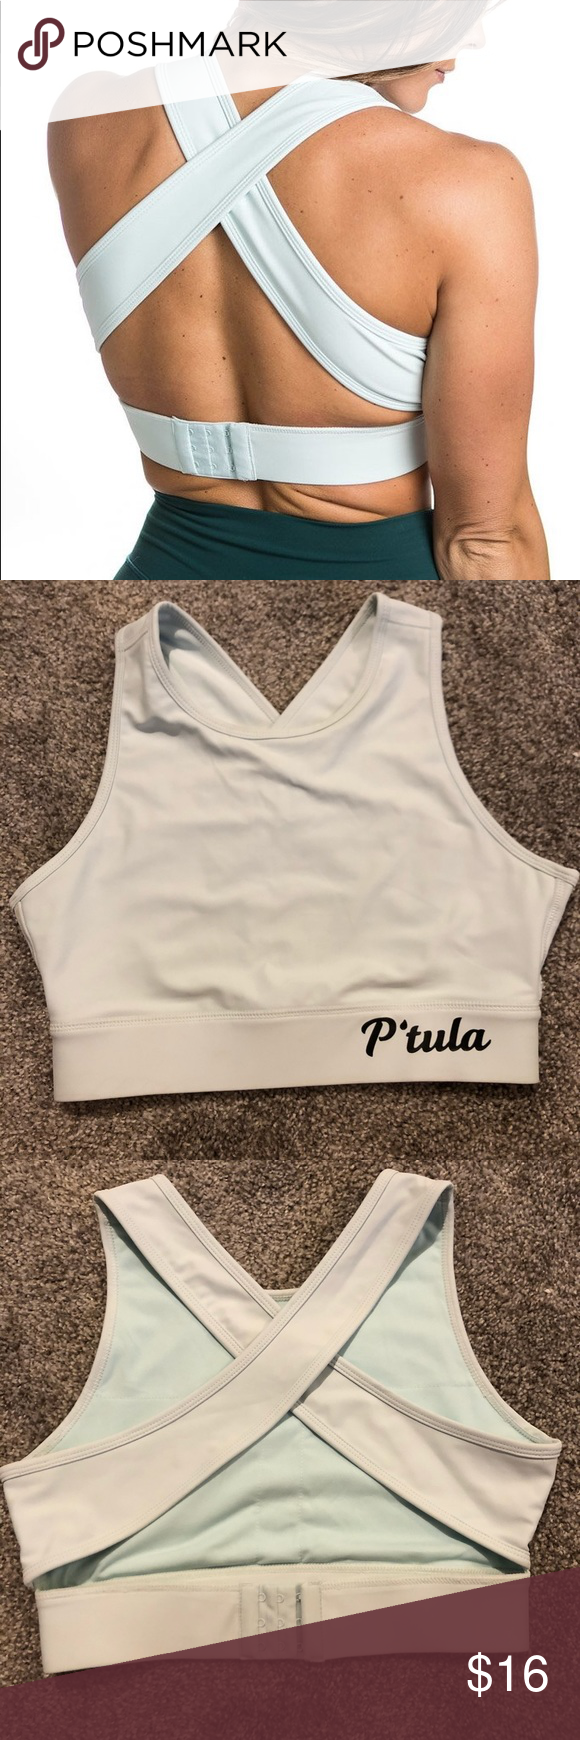 Ptula Araceli Fierce Crop Top Color Cool Mint Size Medium Condition Like New No Signs Of Wear P Tula Tops Crop Tops Crop Tops Fashion High Neck Bikinis Code kelly for ptula active! pinterest